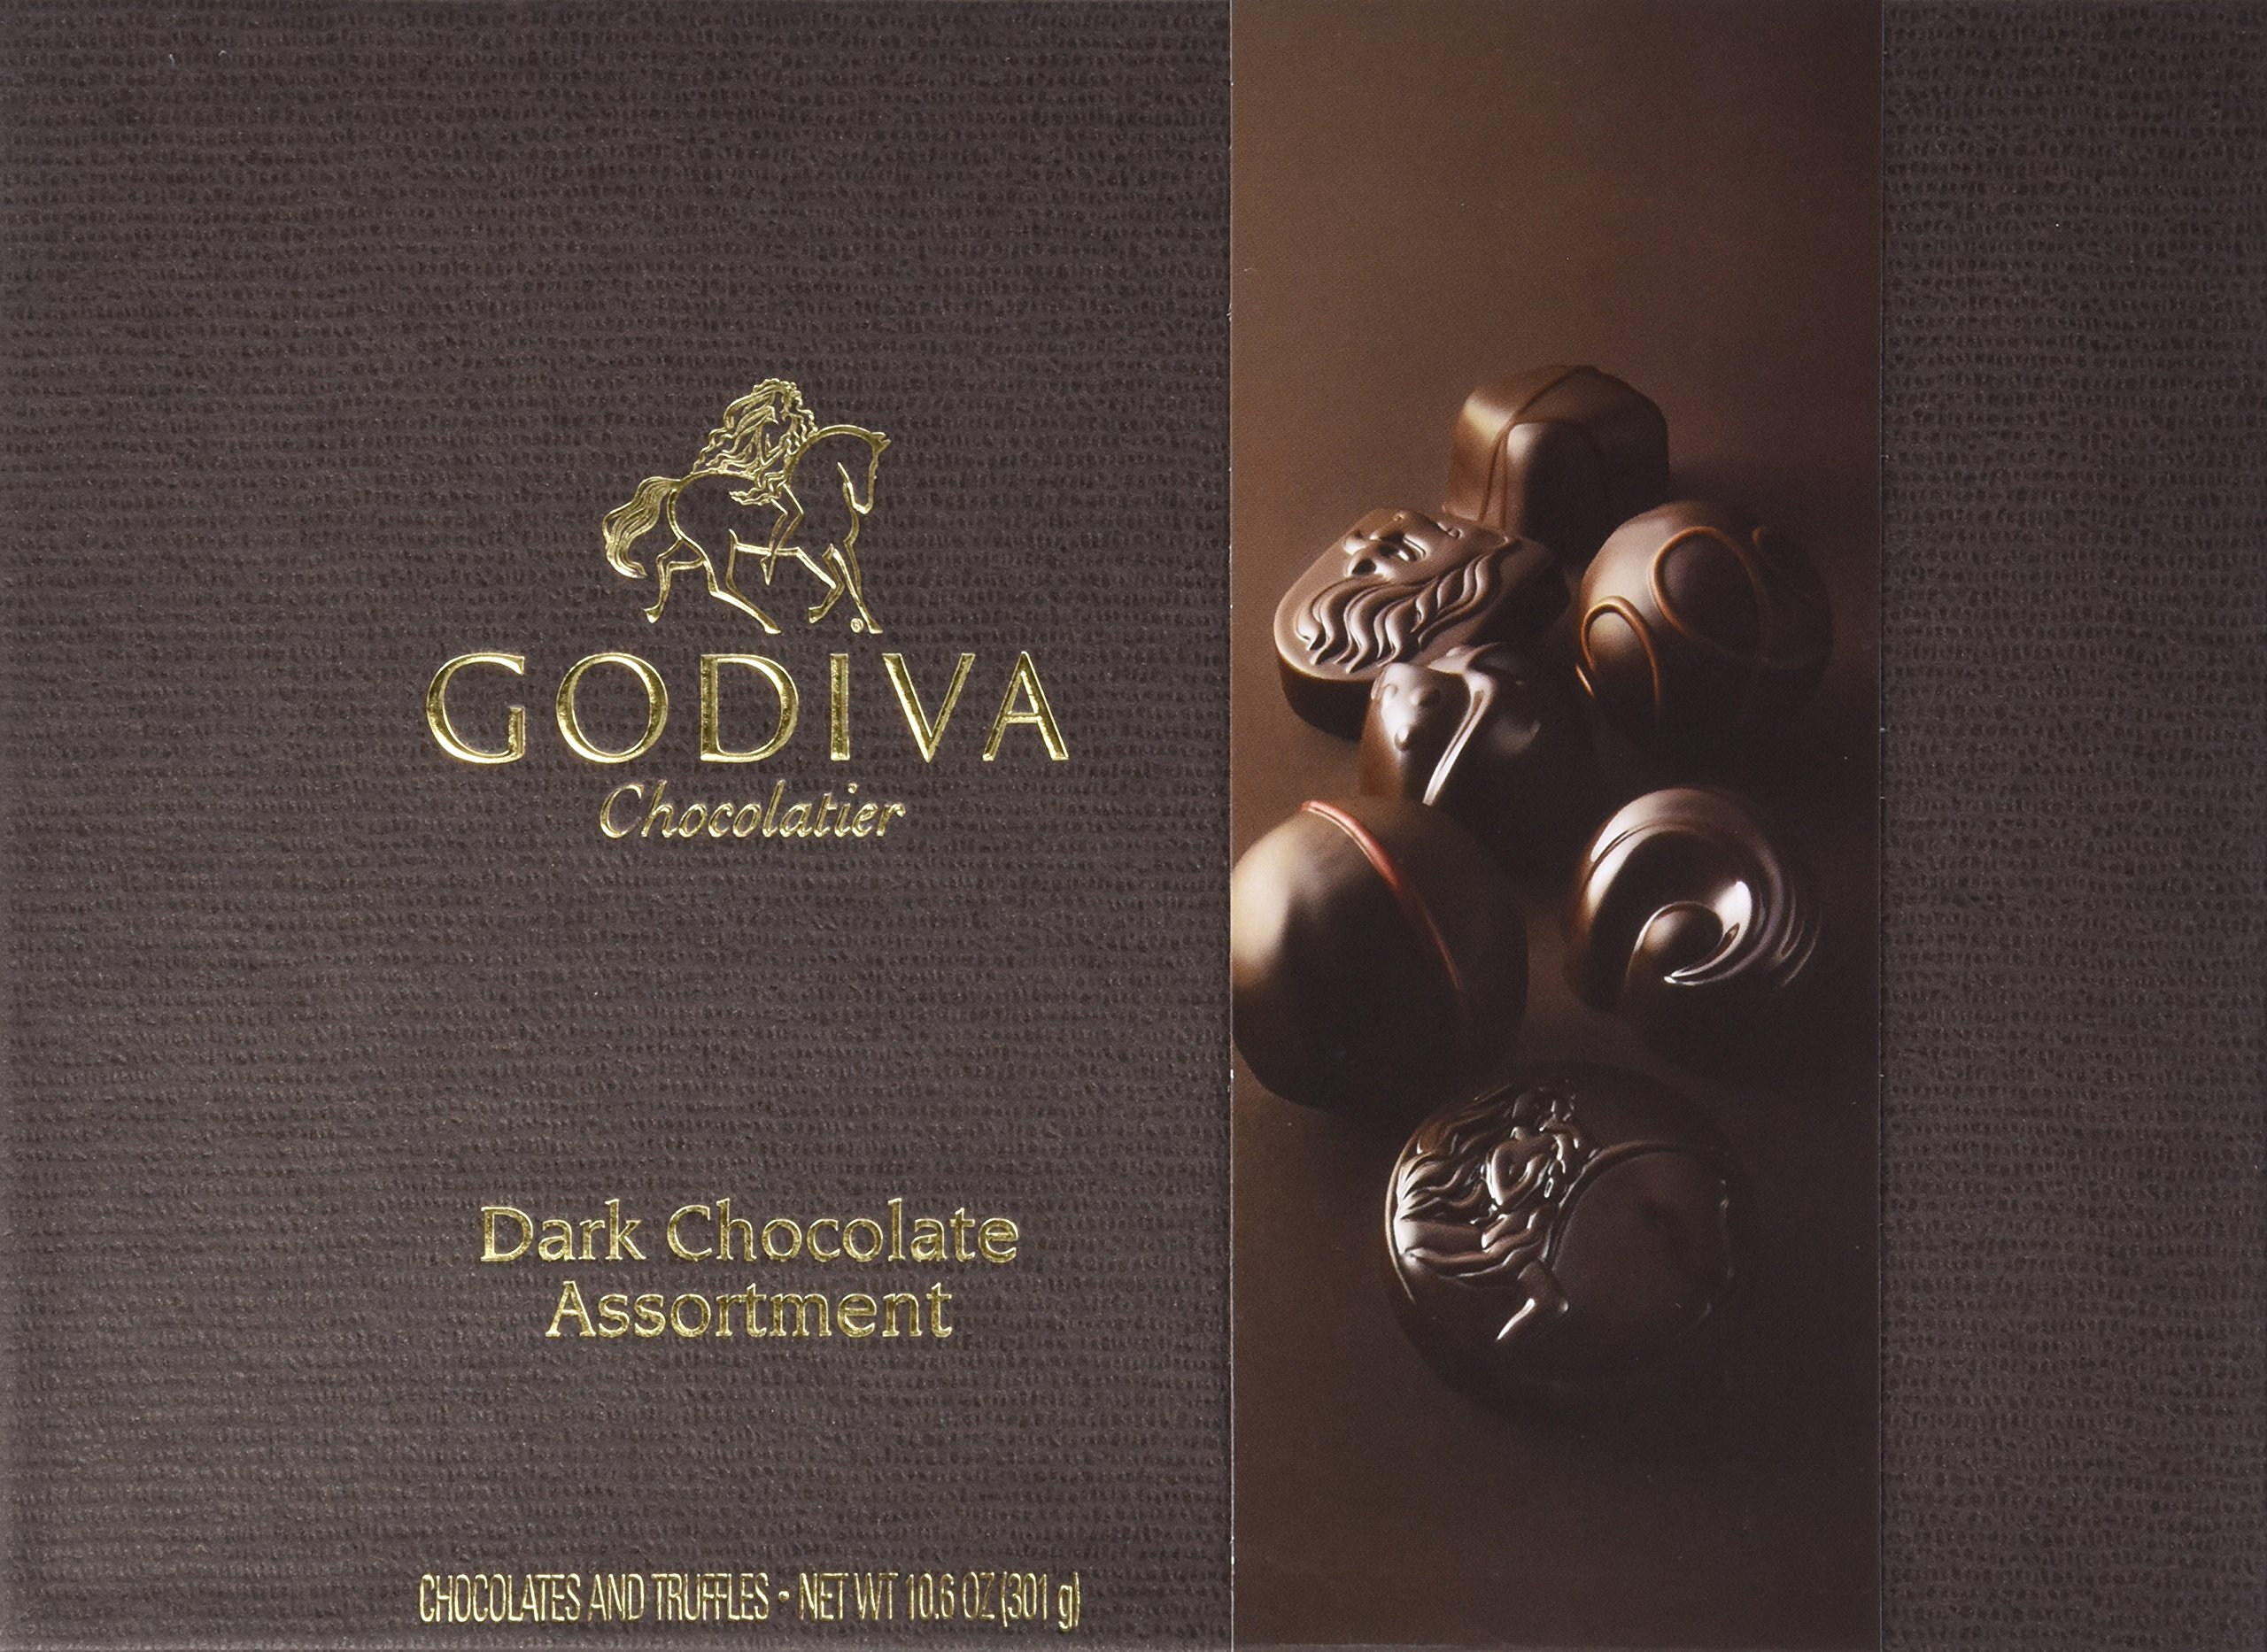 GODIVA Chocolatier Dark Chocolate Assortment Gift Box, Classic Ribbon, 27 pc. by GODIVA Chocolatier (Image #1)